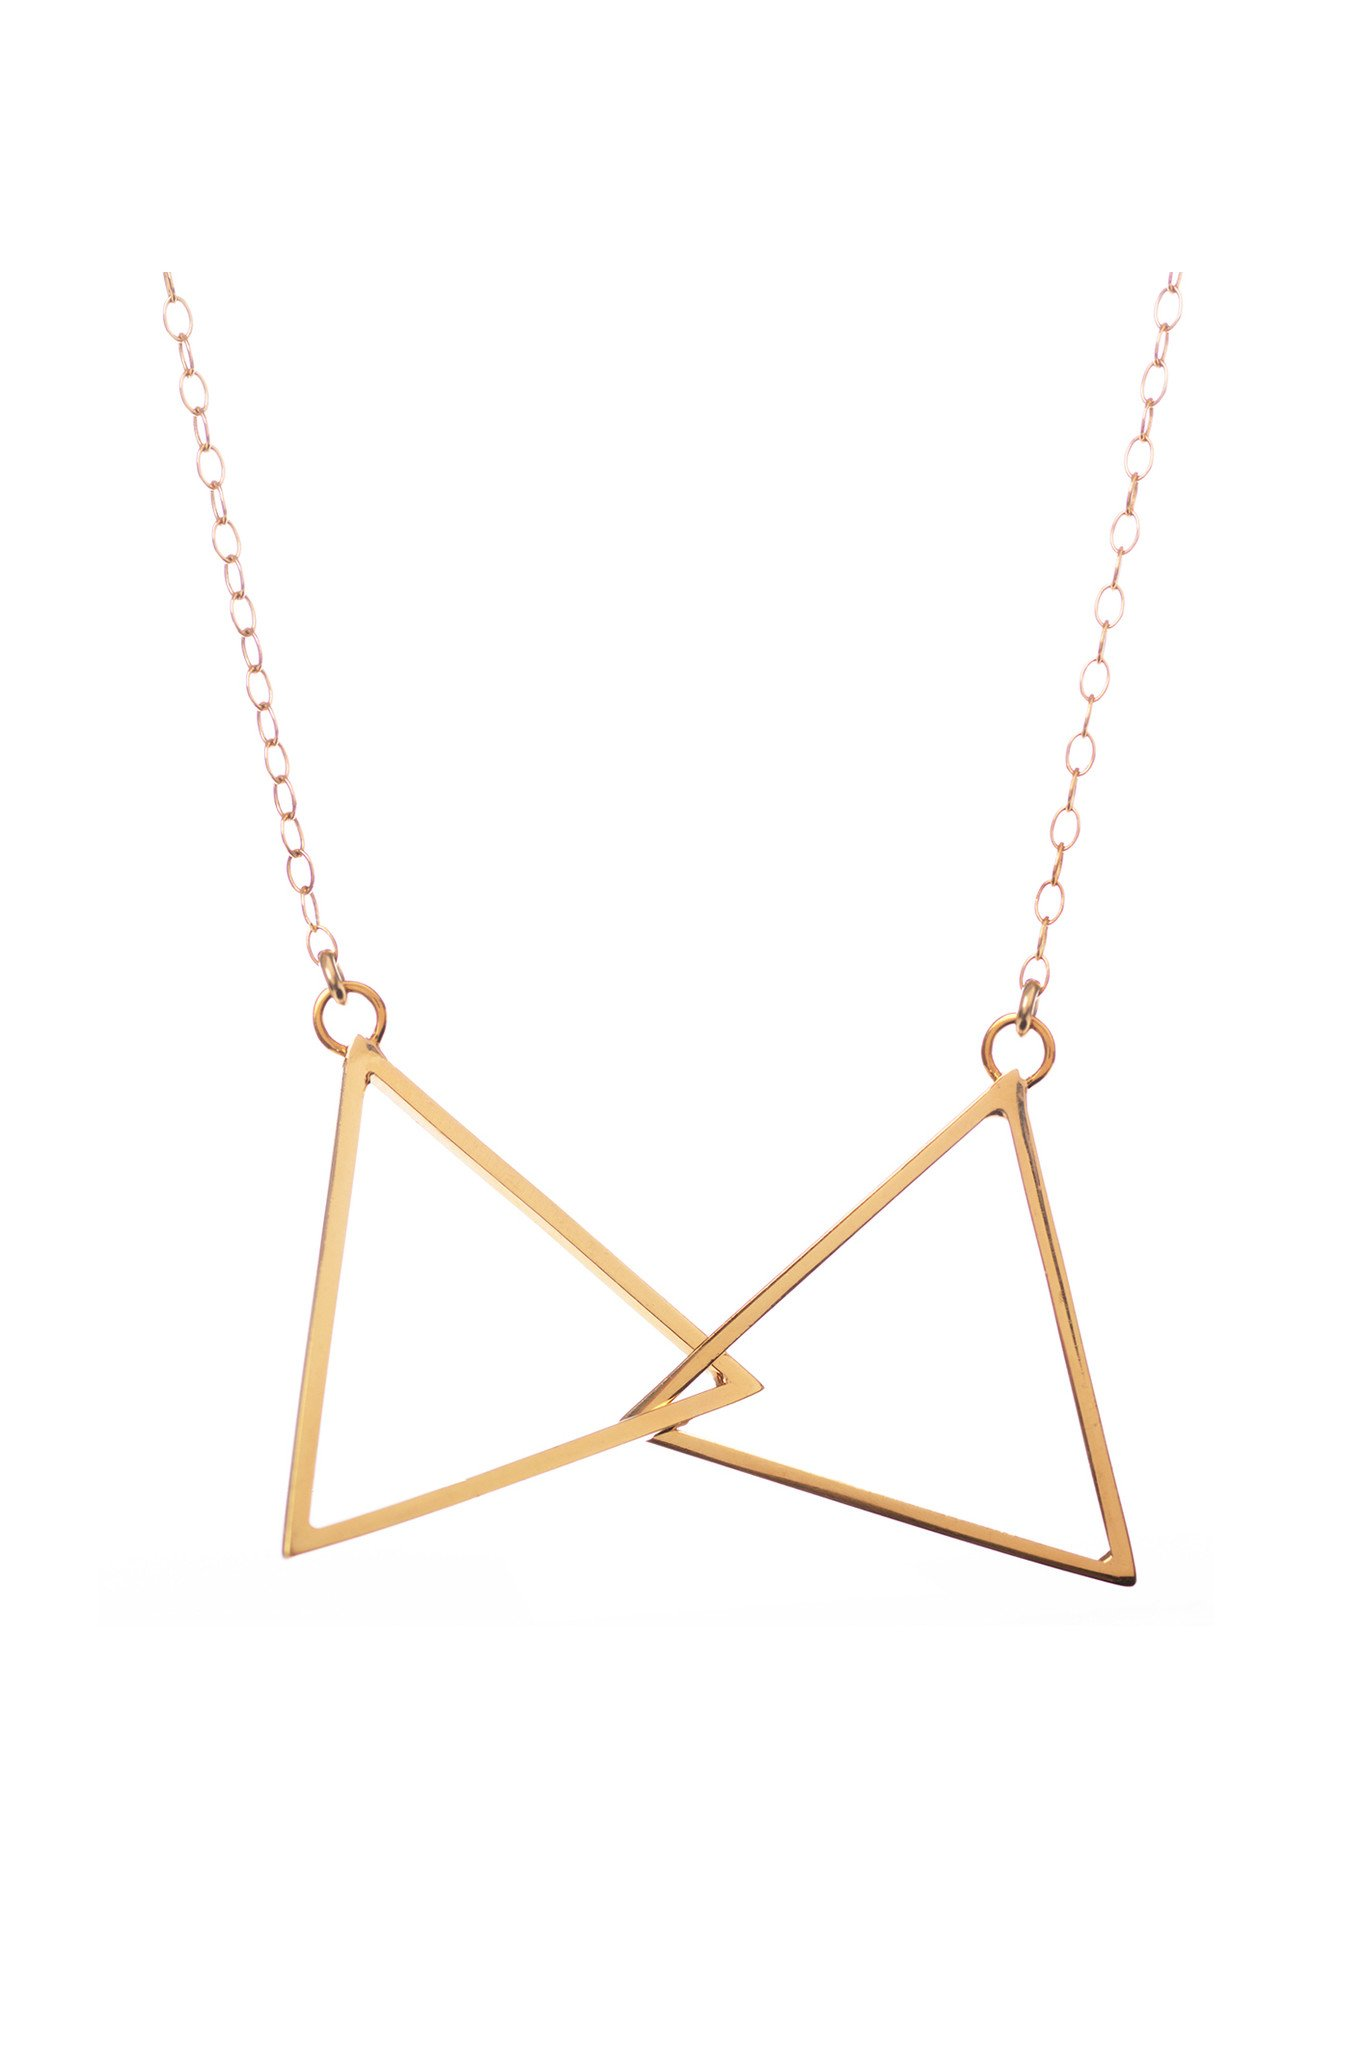 Connected, Gold Necklace by Sally Lane Jewellery on curated-crowd.com